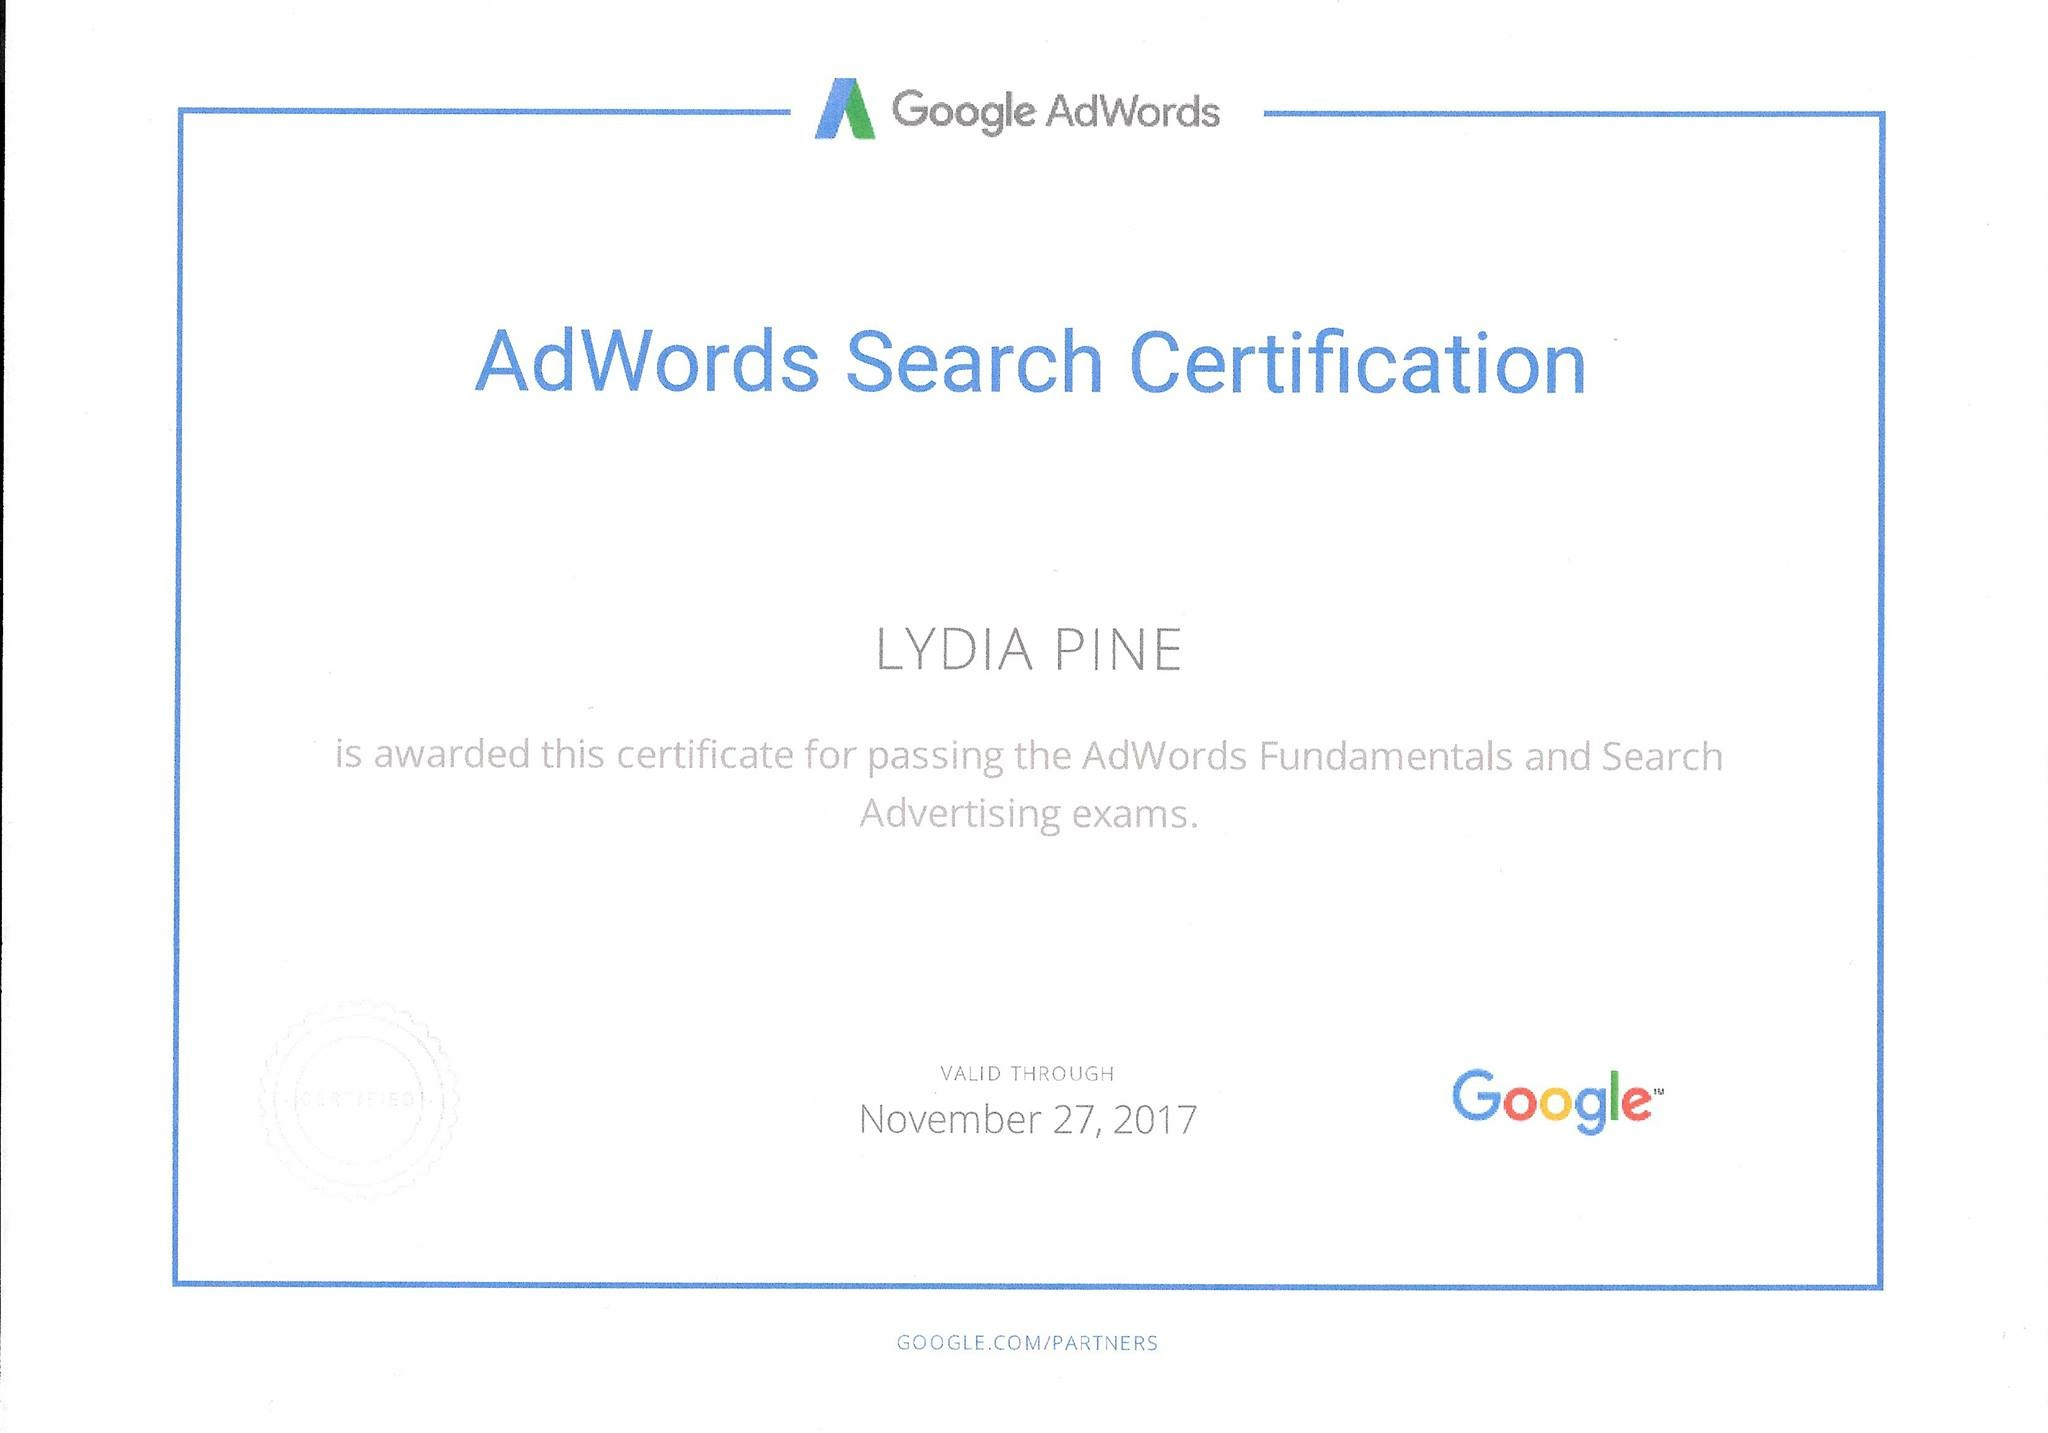 Google Adwords Certification Check